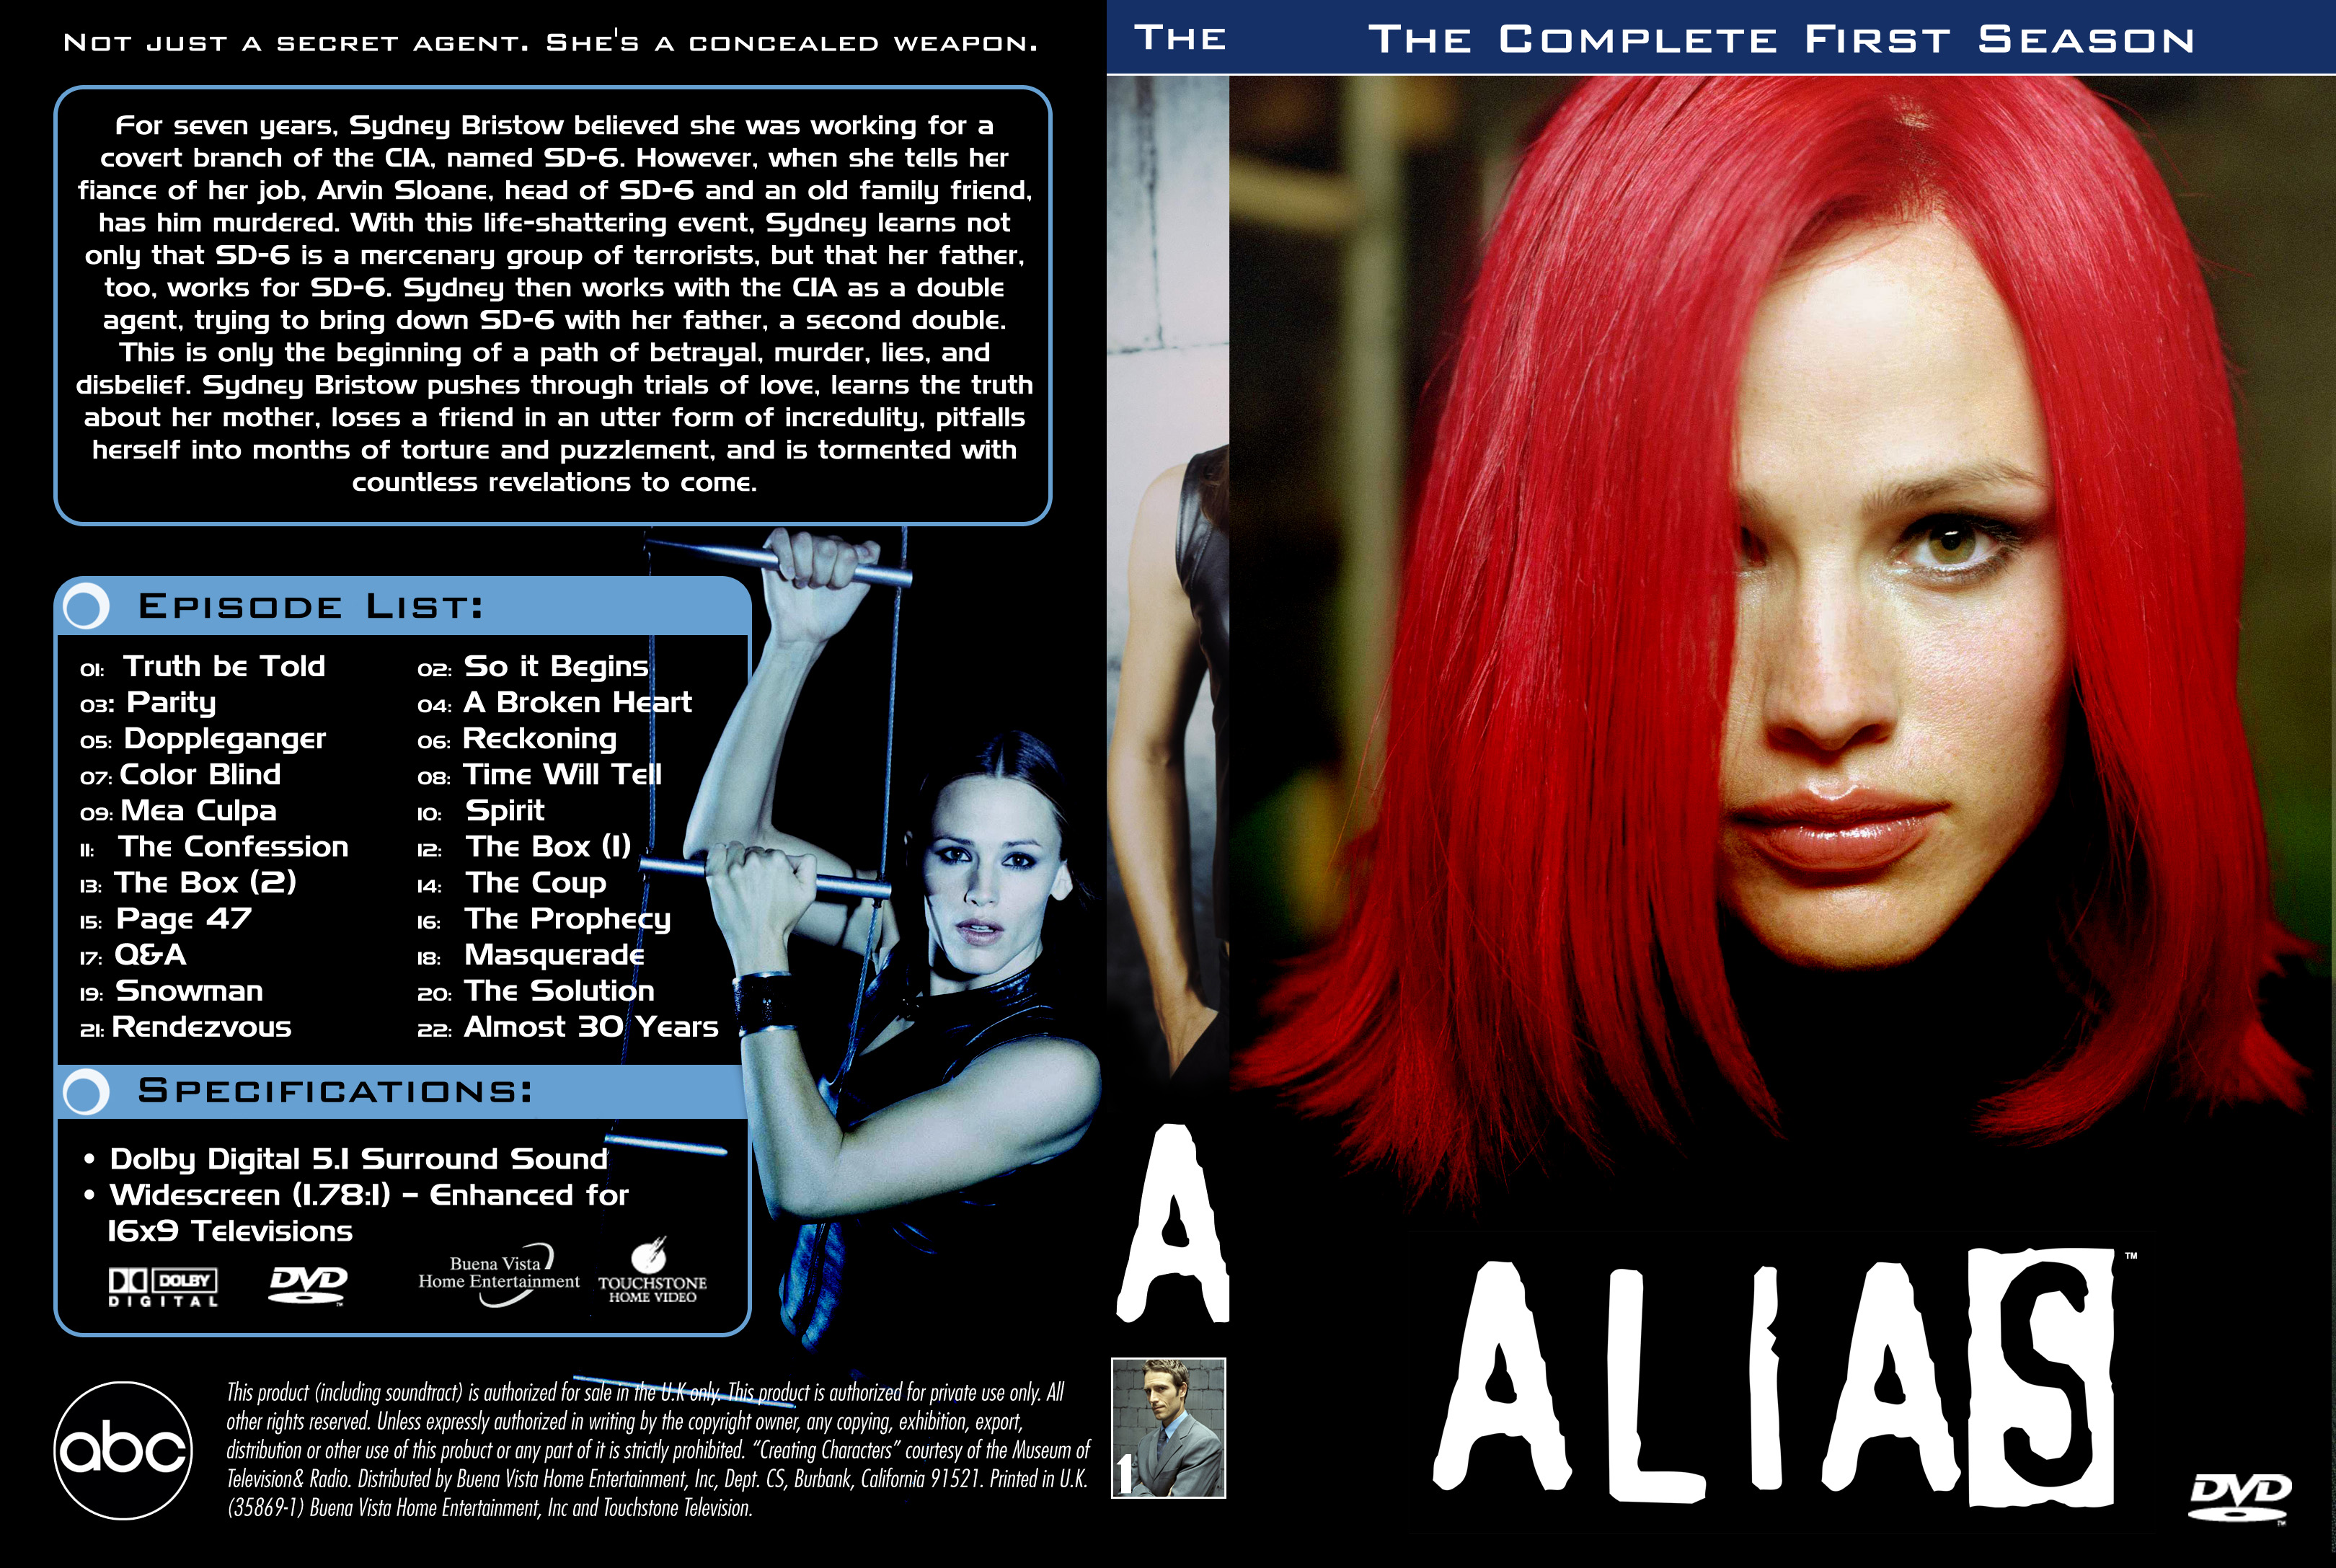 alias season 1